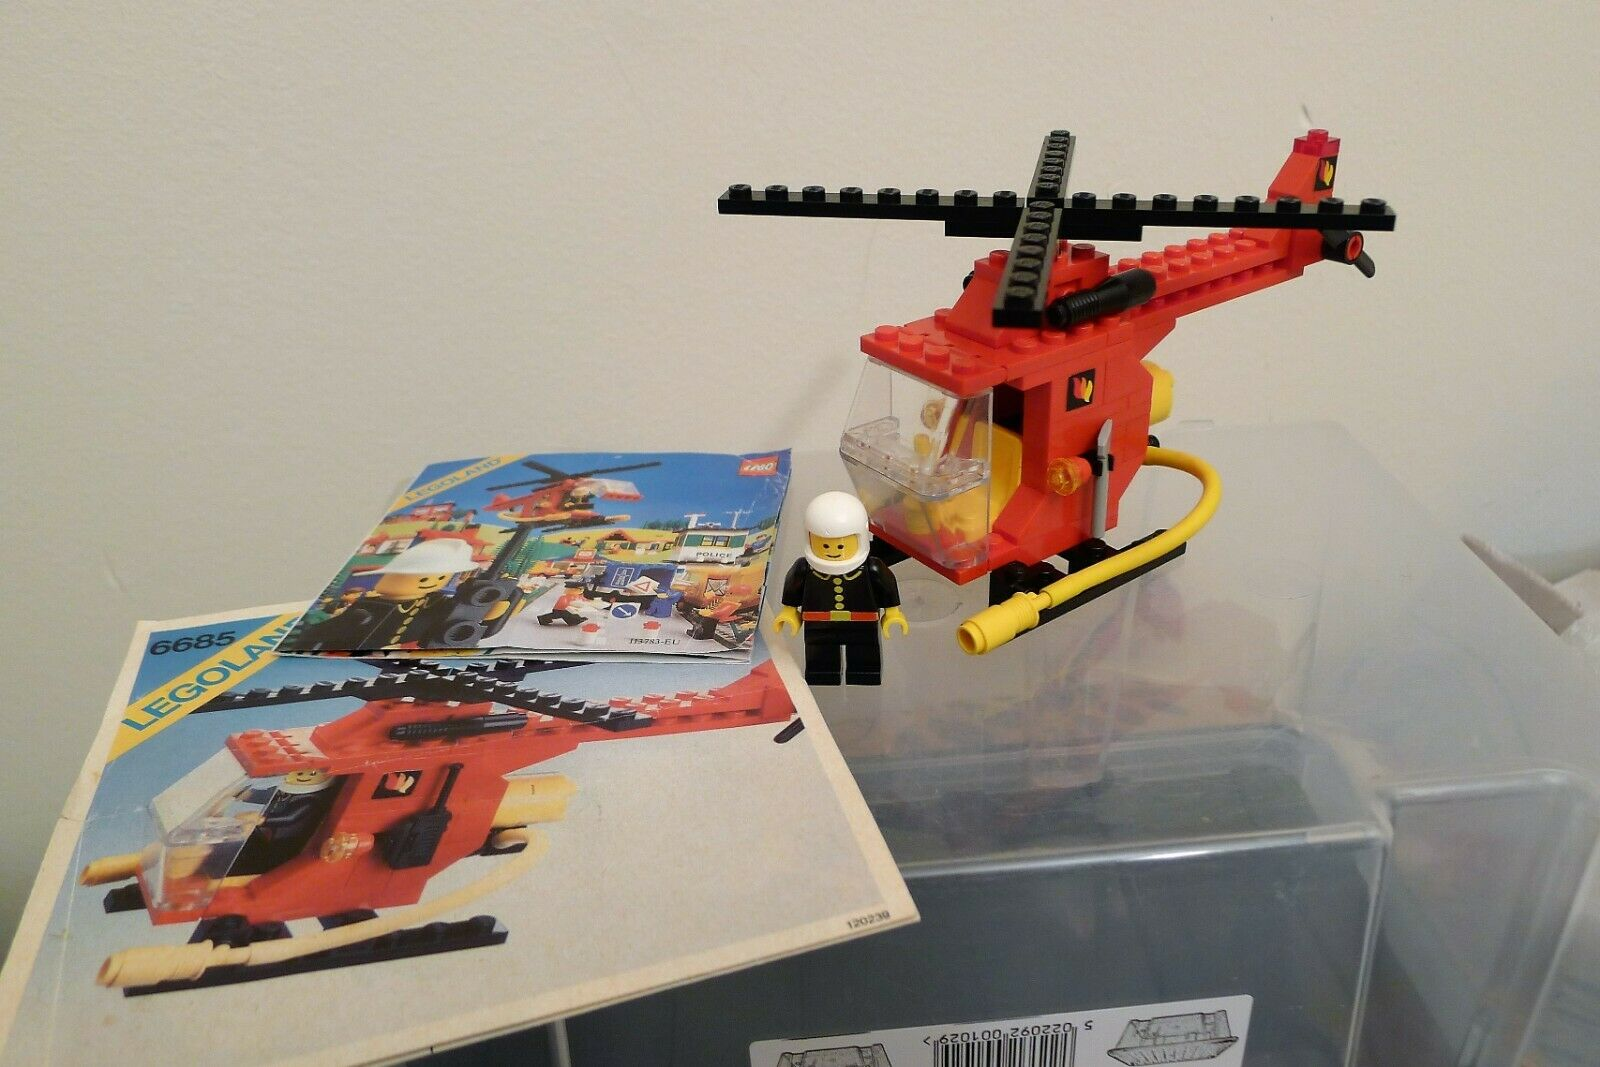 LEGO Legoland 6685 Fire Copter Helicopter 100% CORRECT with instructions